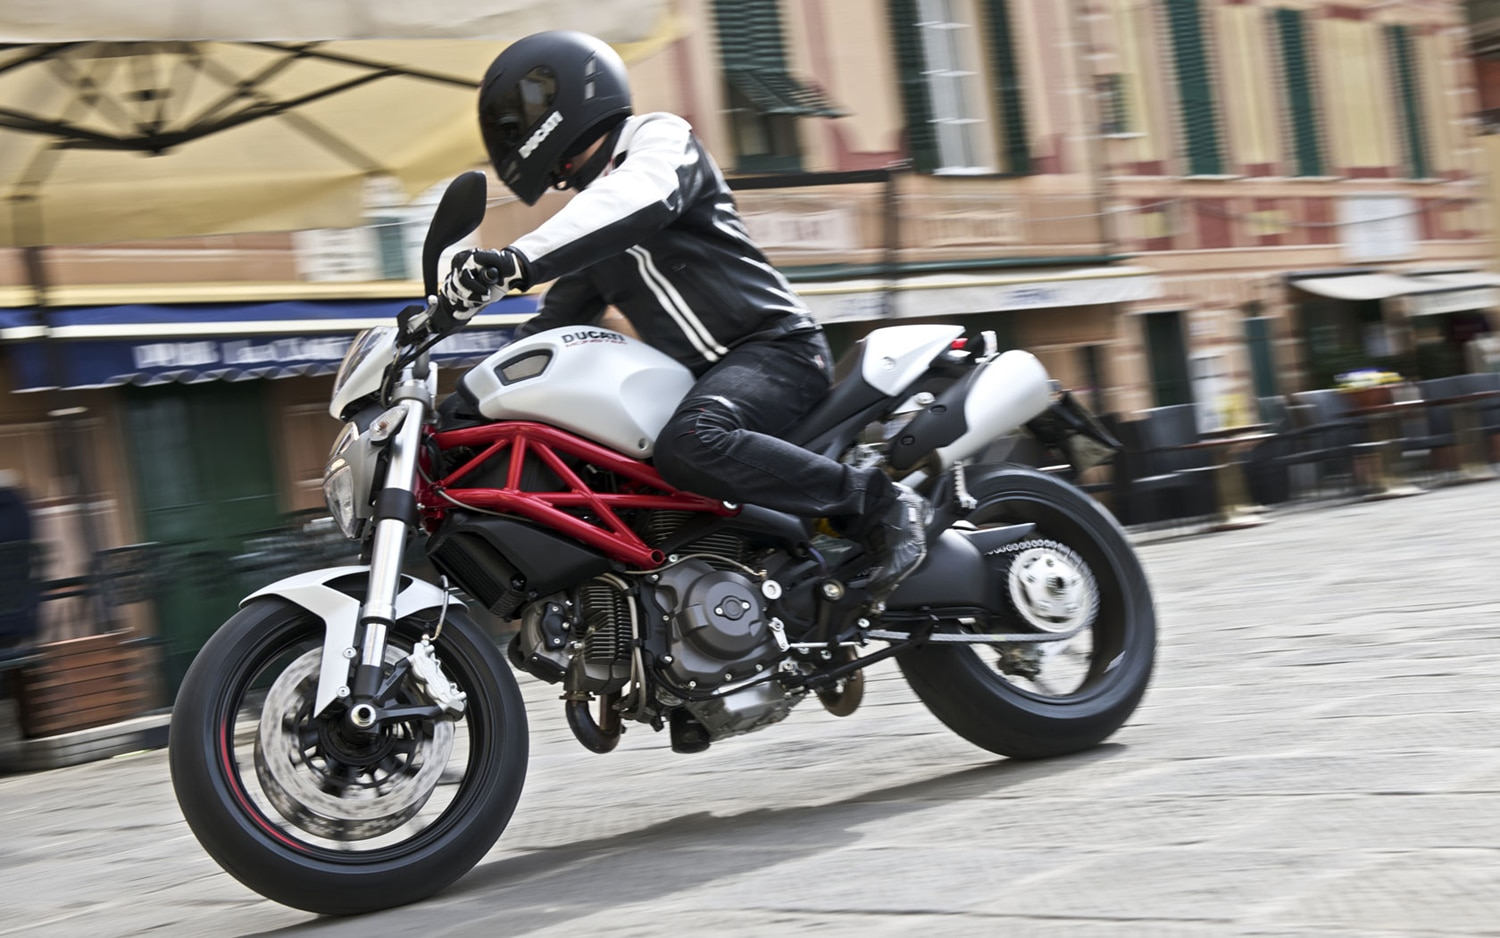 2010 Ducati Monster 796 Front Left Side View1